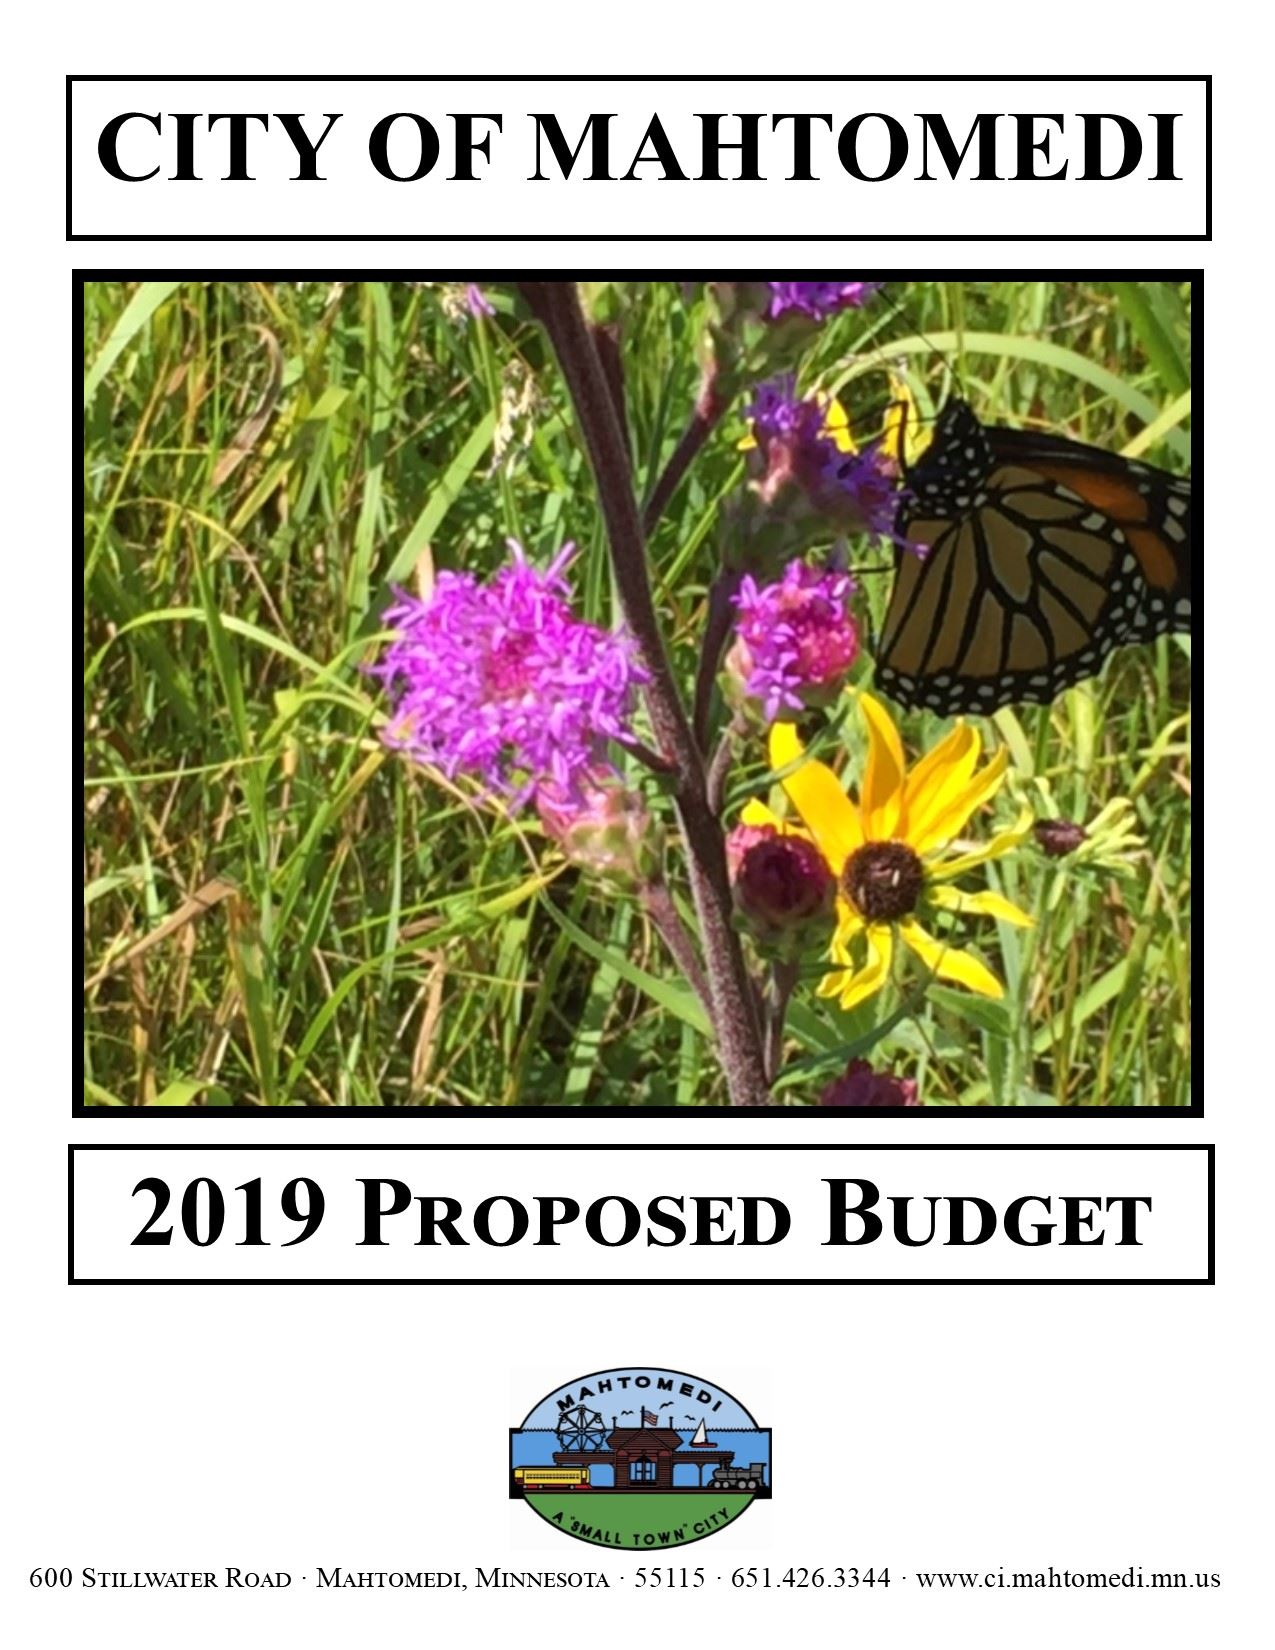 2019 Proposed Budget Cover (IMAGE)